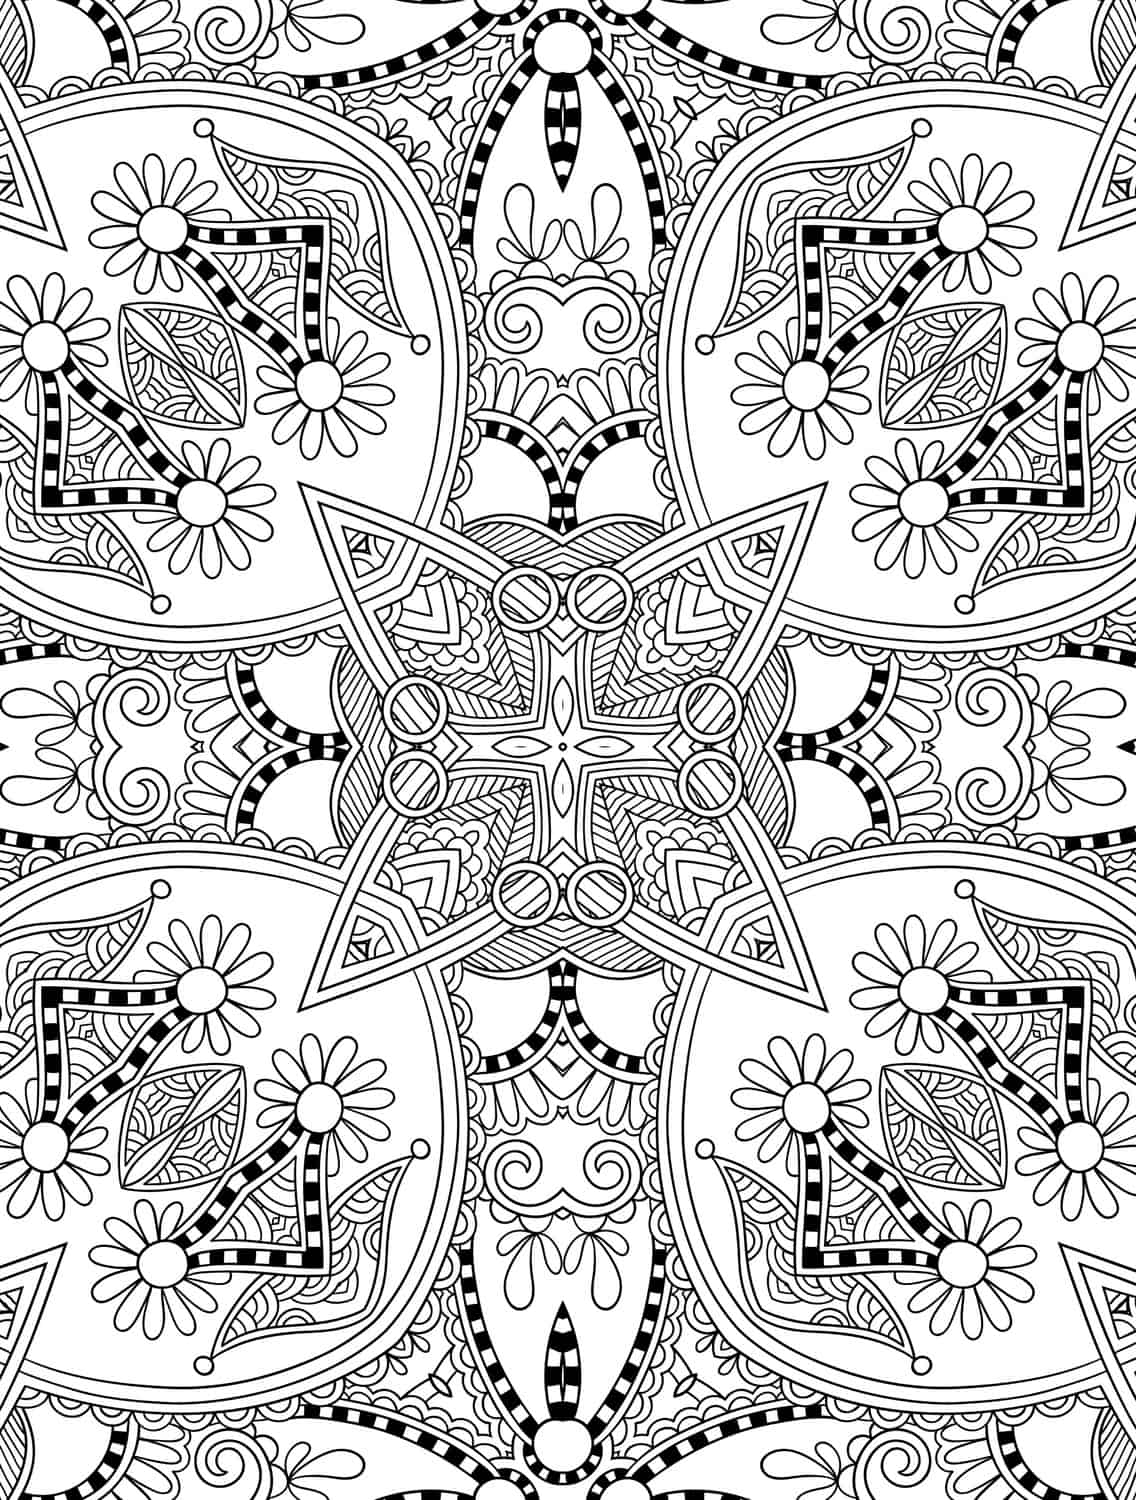 free coloring pages for adults printable free adult floral coloring page the graphics fairy free adults for coloring pages printable